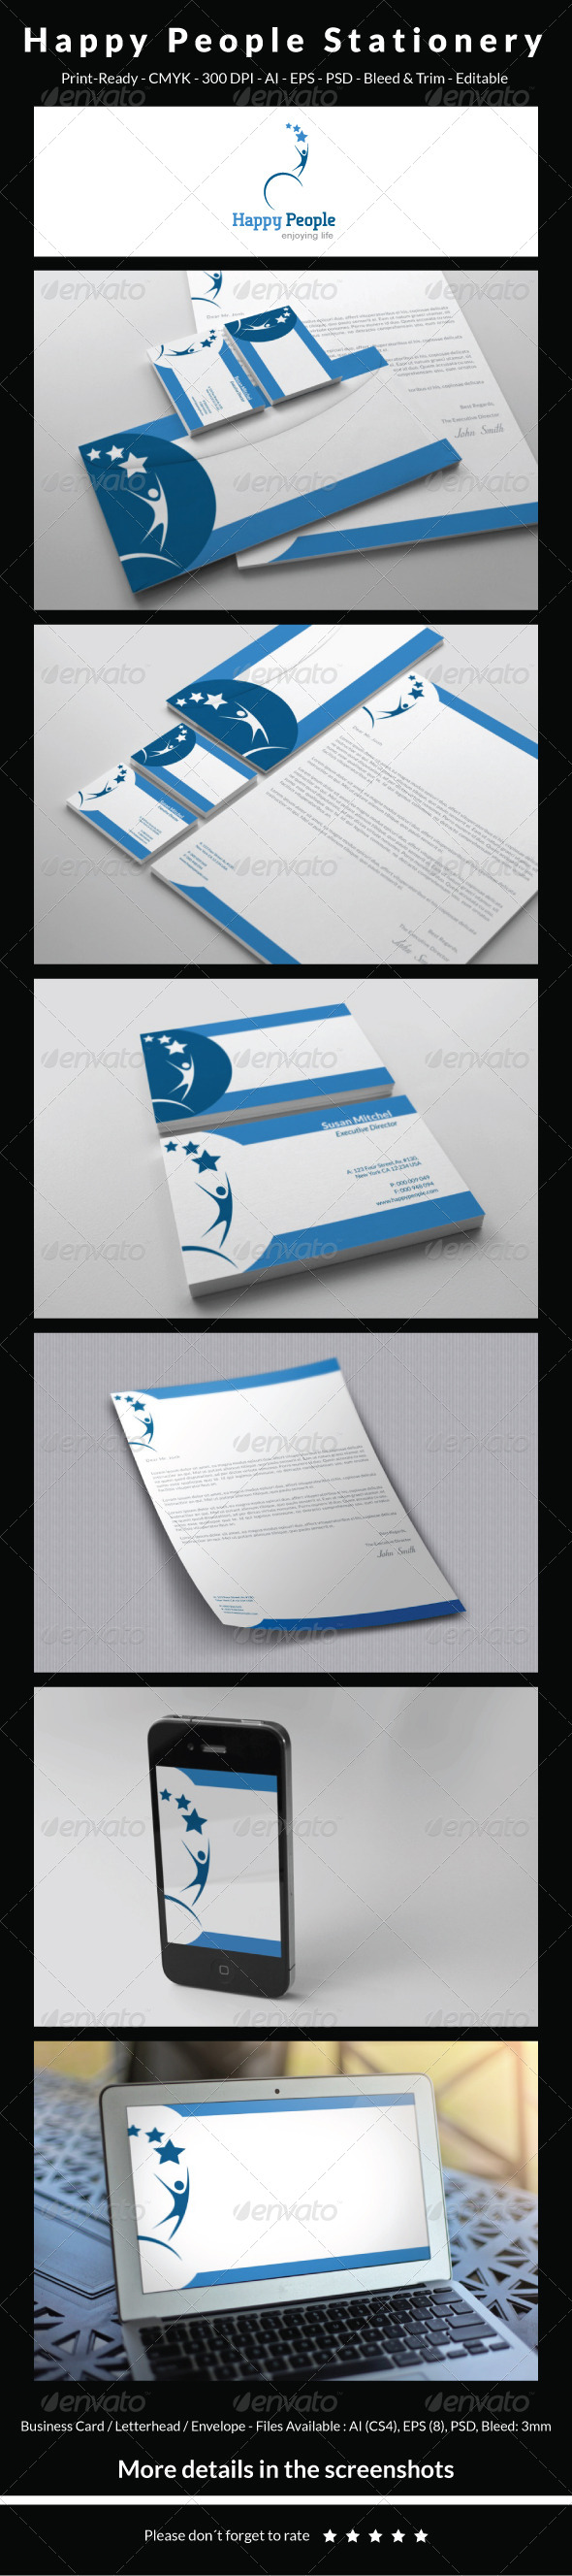 GraphicRiver Happy People Stationery 5396141